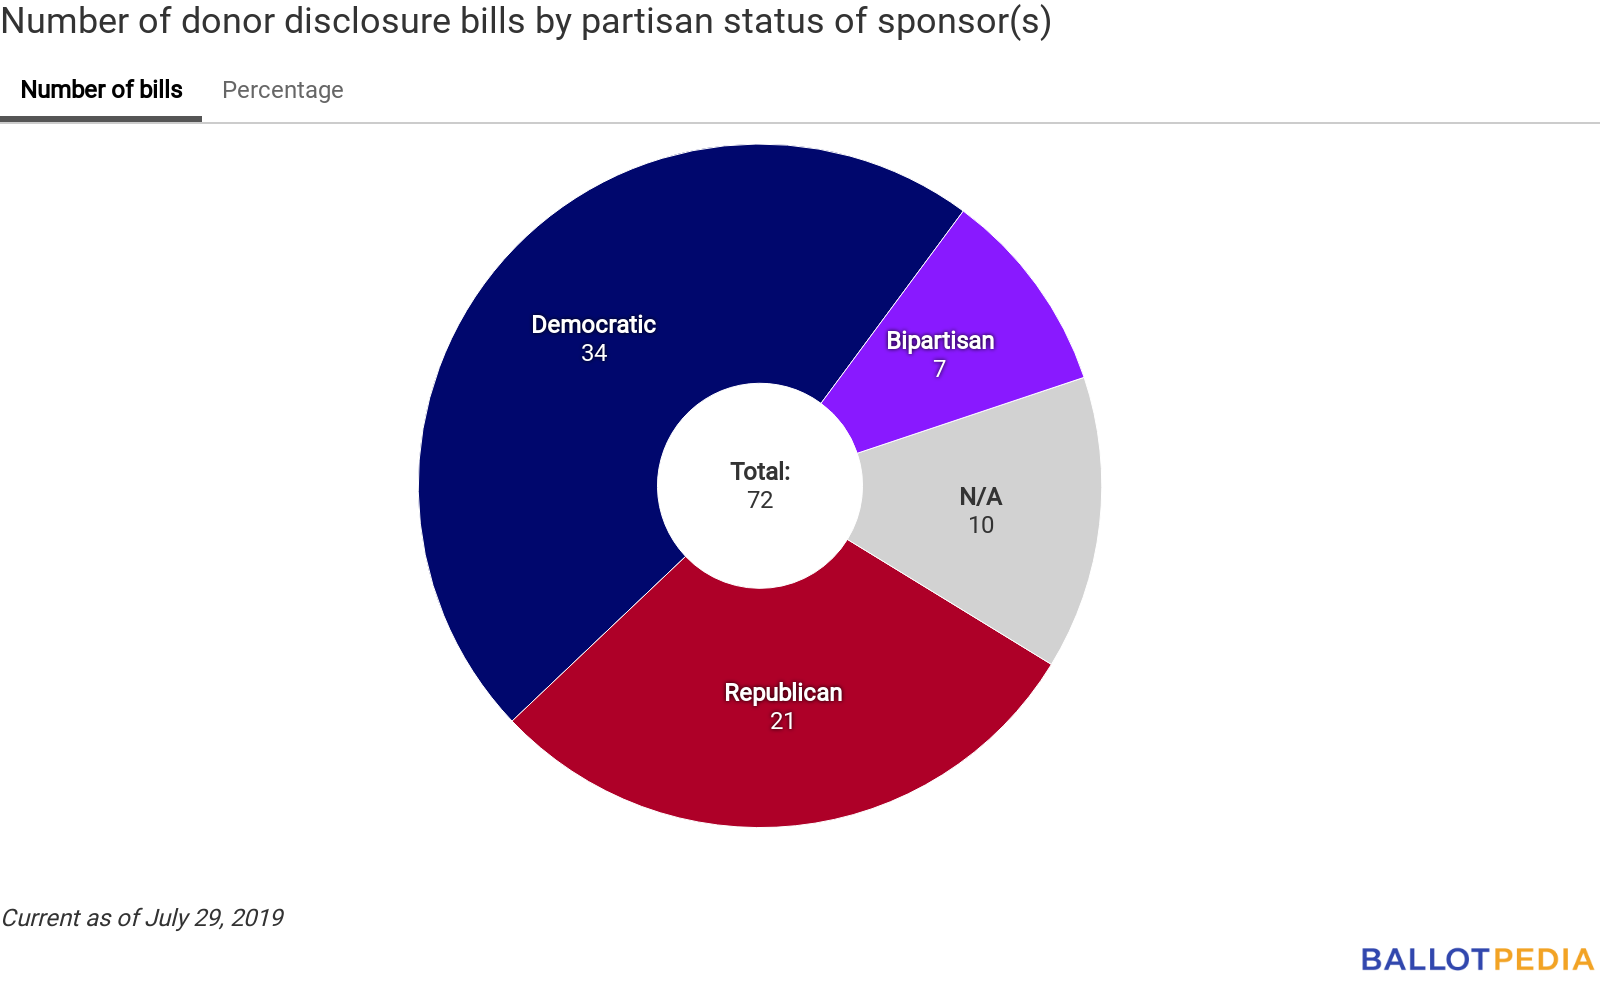 Number of relevant bills by partisan status of sponsor(s)